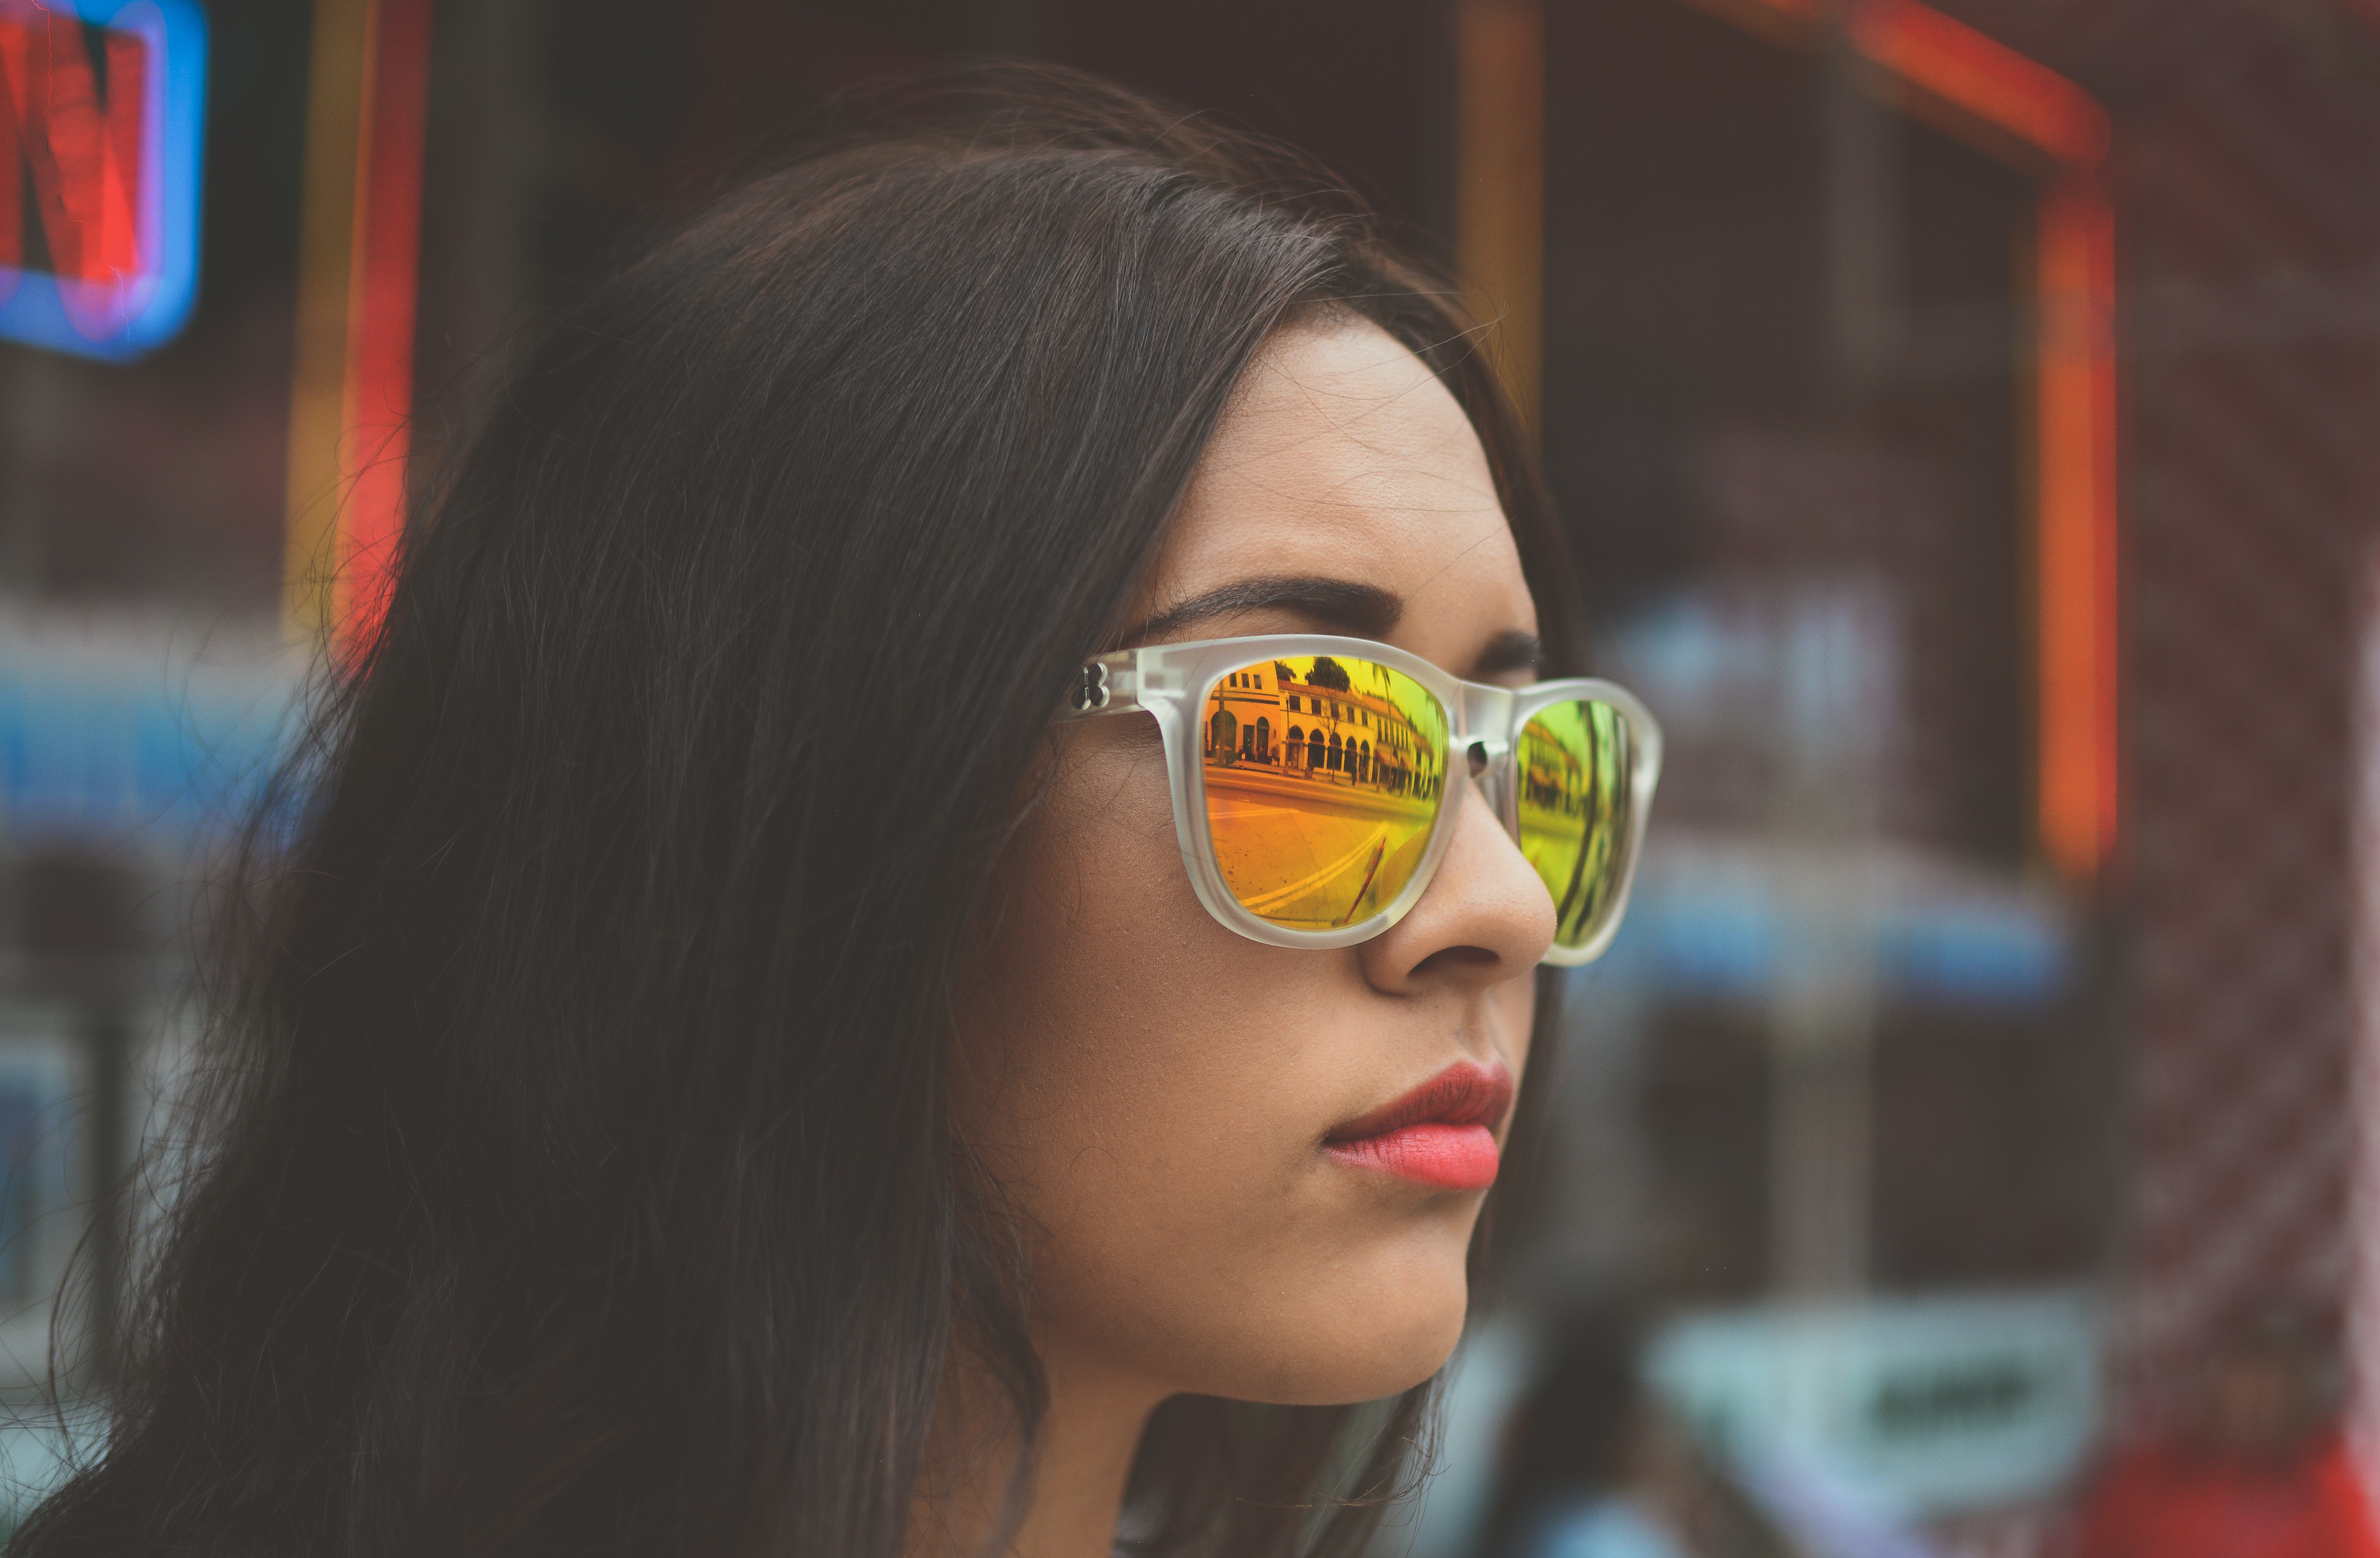 Woman wearing reflective sunglasses looking out at a city street